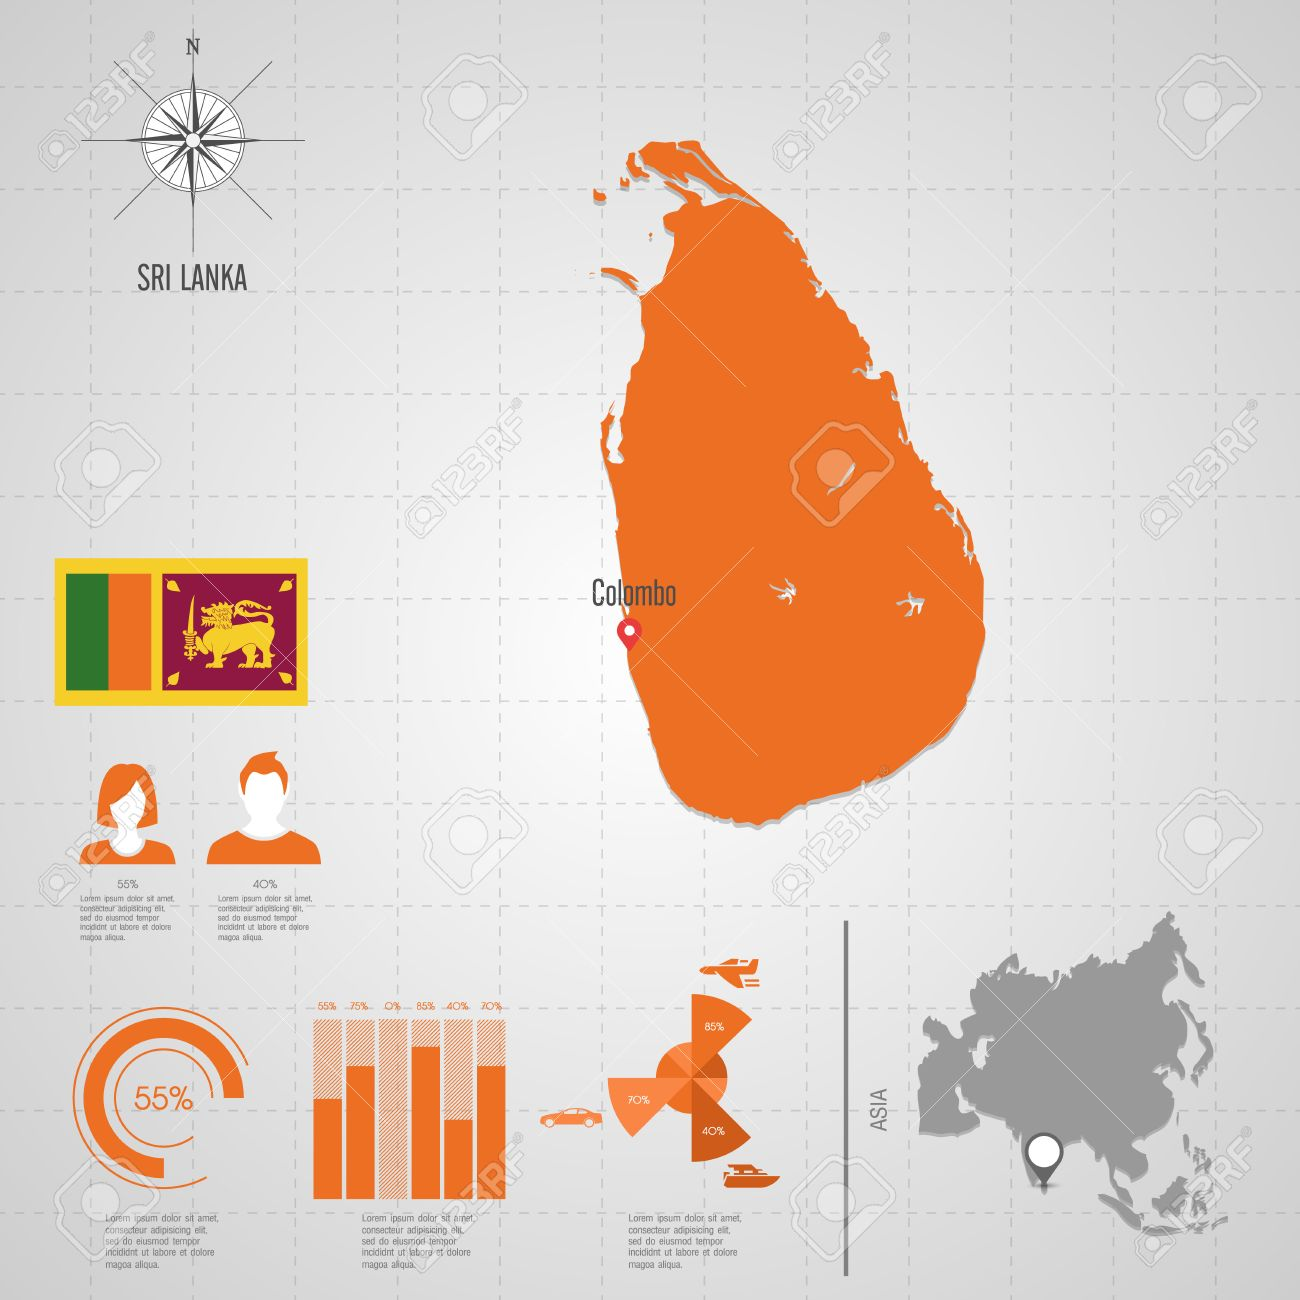 Republic of sri lanka flag asia world map travel vector royalty free republic of sri lanka flag asia world map travel vector stock vector 30395867 gumiabroncs Images